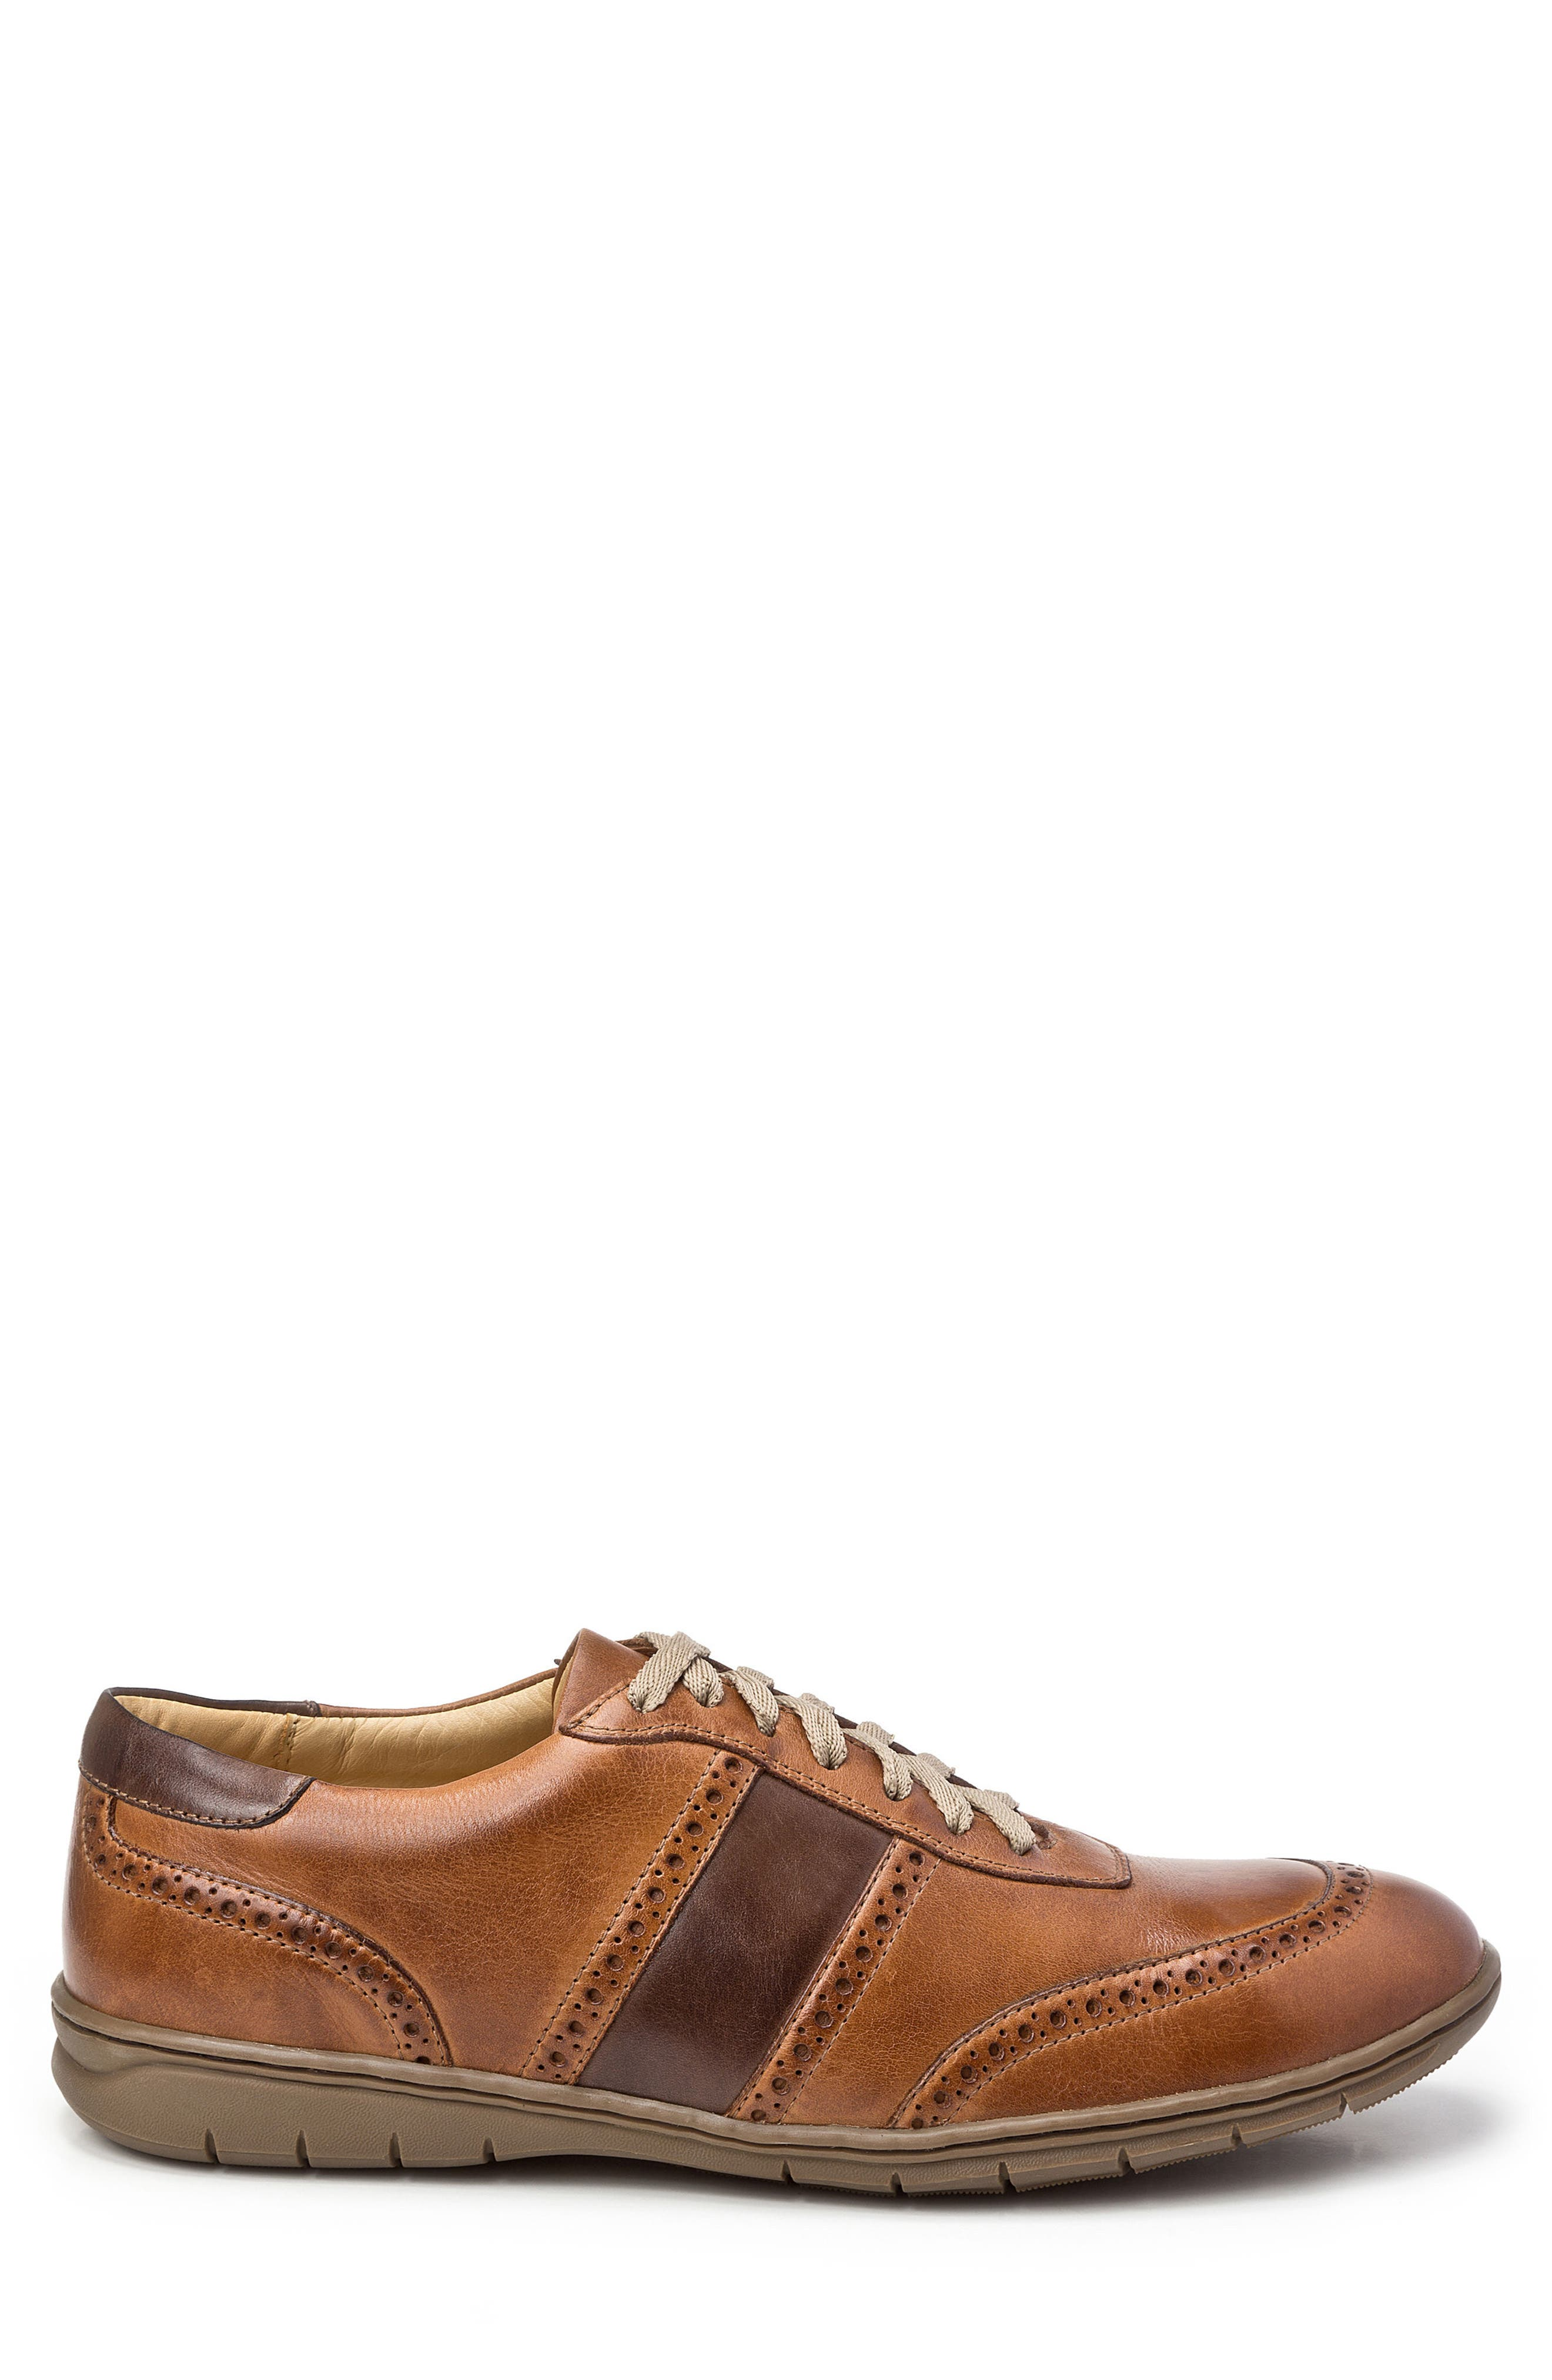 Norris Sneaker,                             Alternate thumbnail 3, color,                             Tan Leather